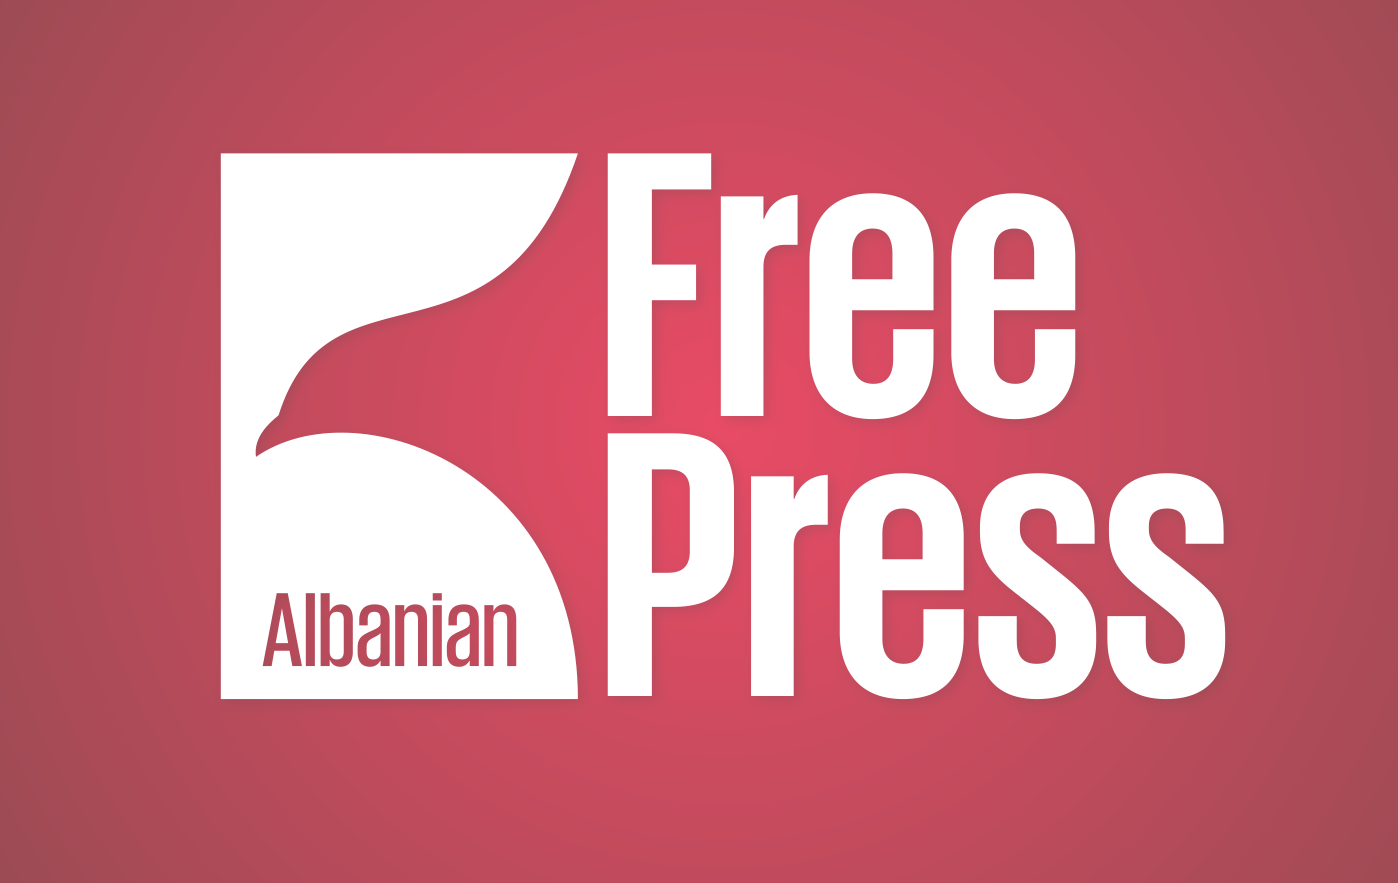 Revolution in the Albanian printed press, the inputs of Albanian Free Press columnists